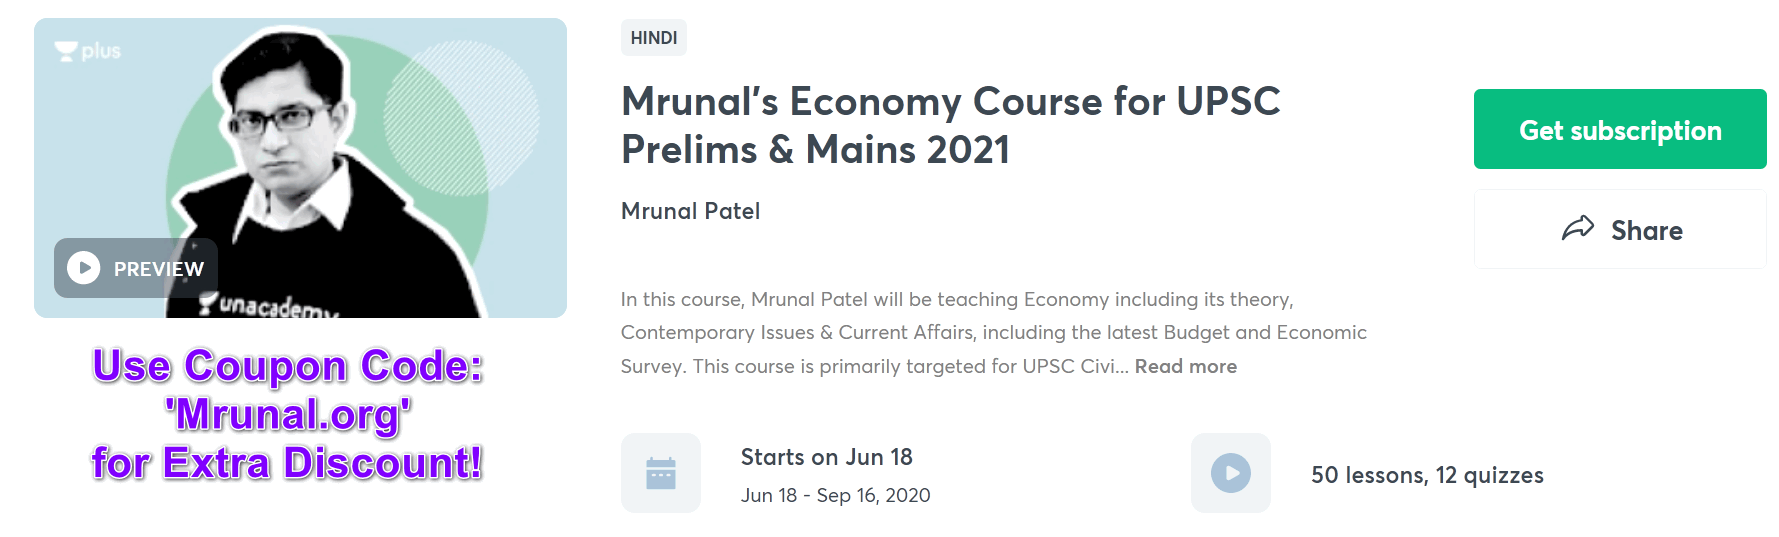 click me to join Mrunal's Full course on Economy @Unacademy Plus for UPSC IAS exam